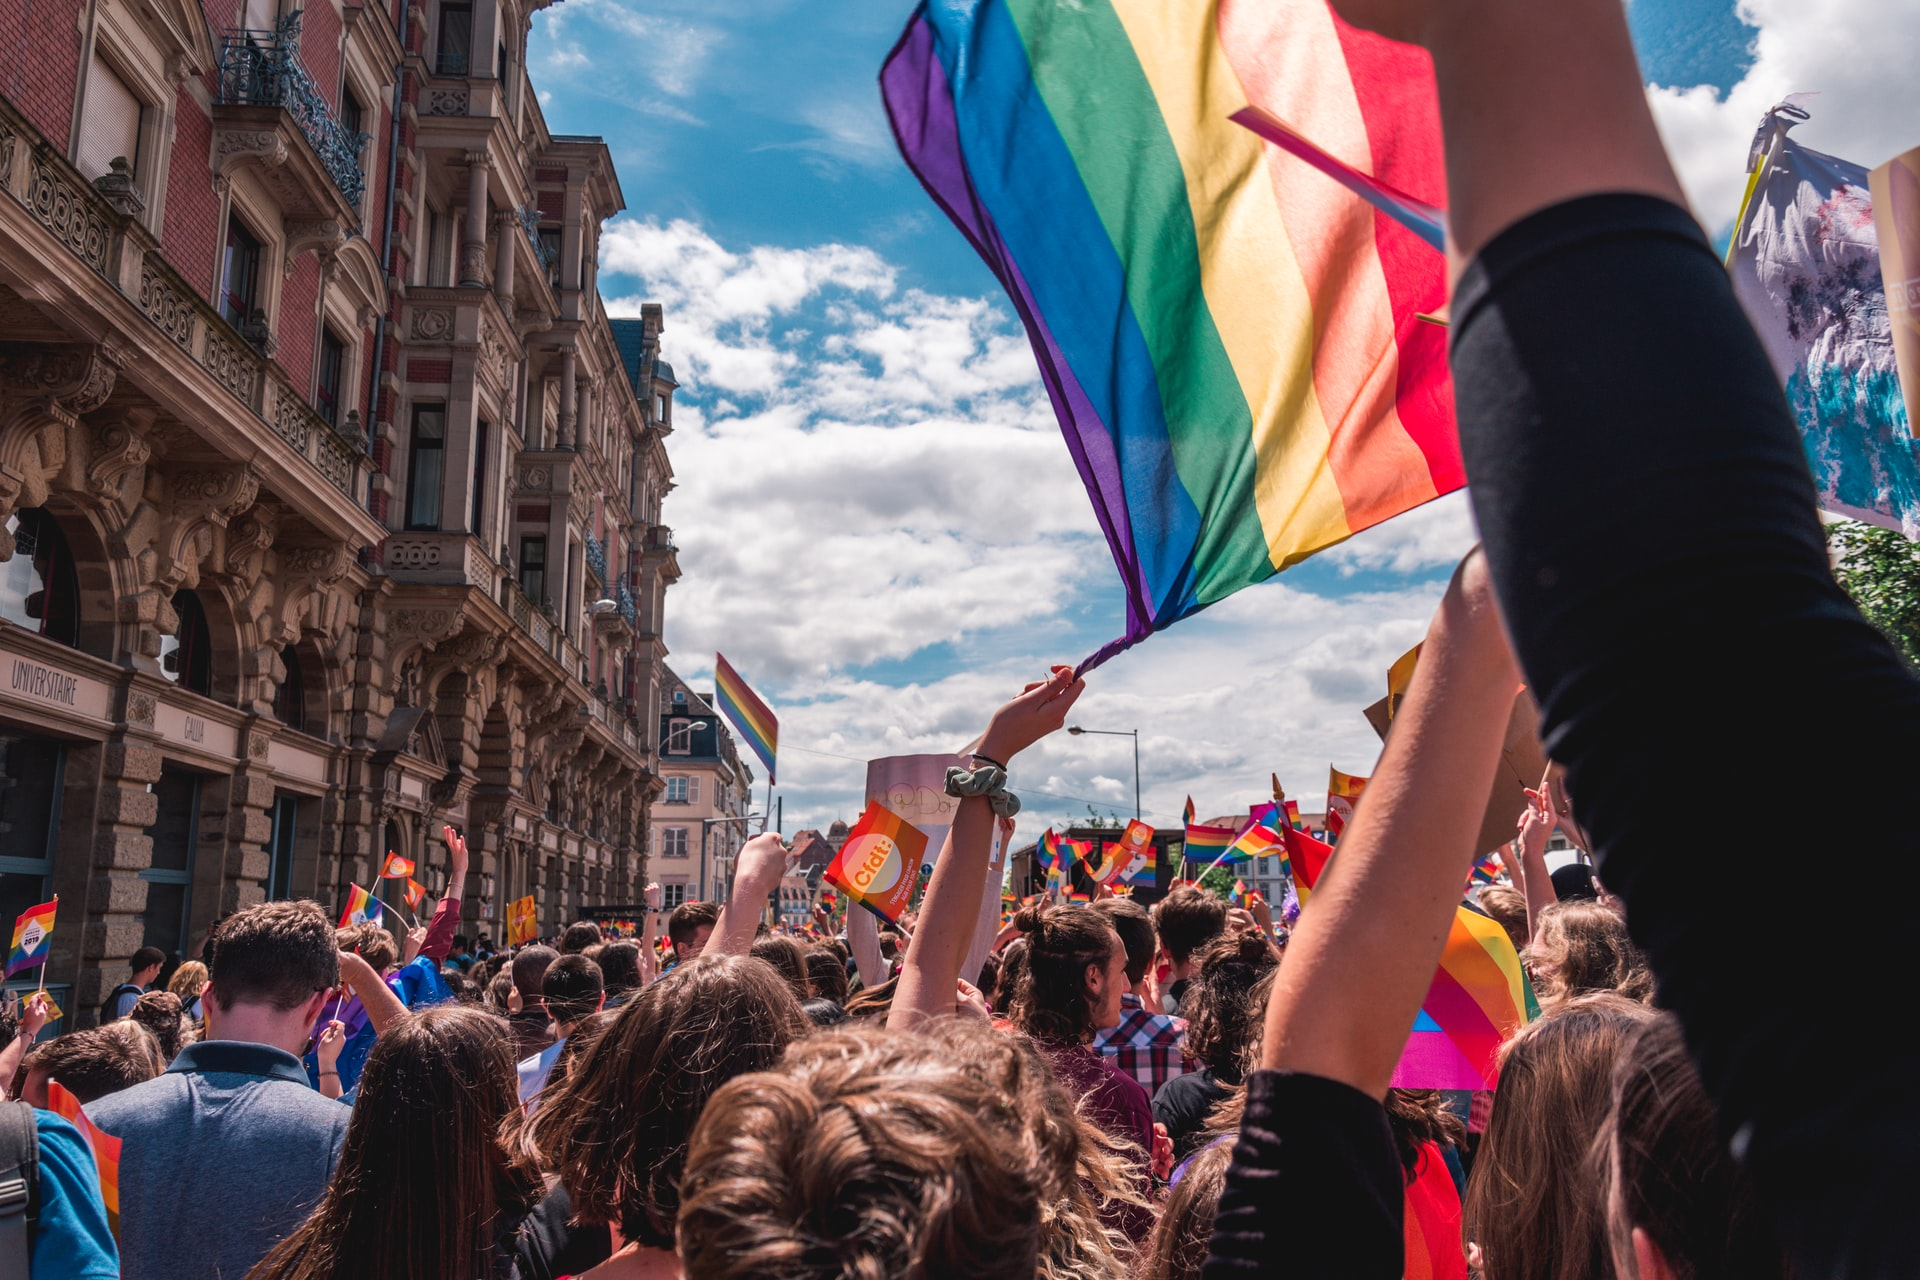 Tech Policy Podcast Flash Update | The Equality Act: What's Next for LGBTQ+ Rights in the US?